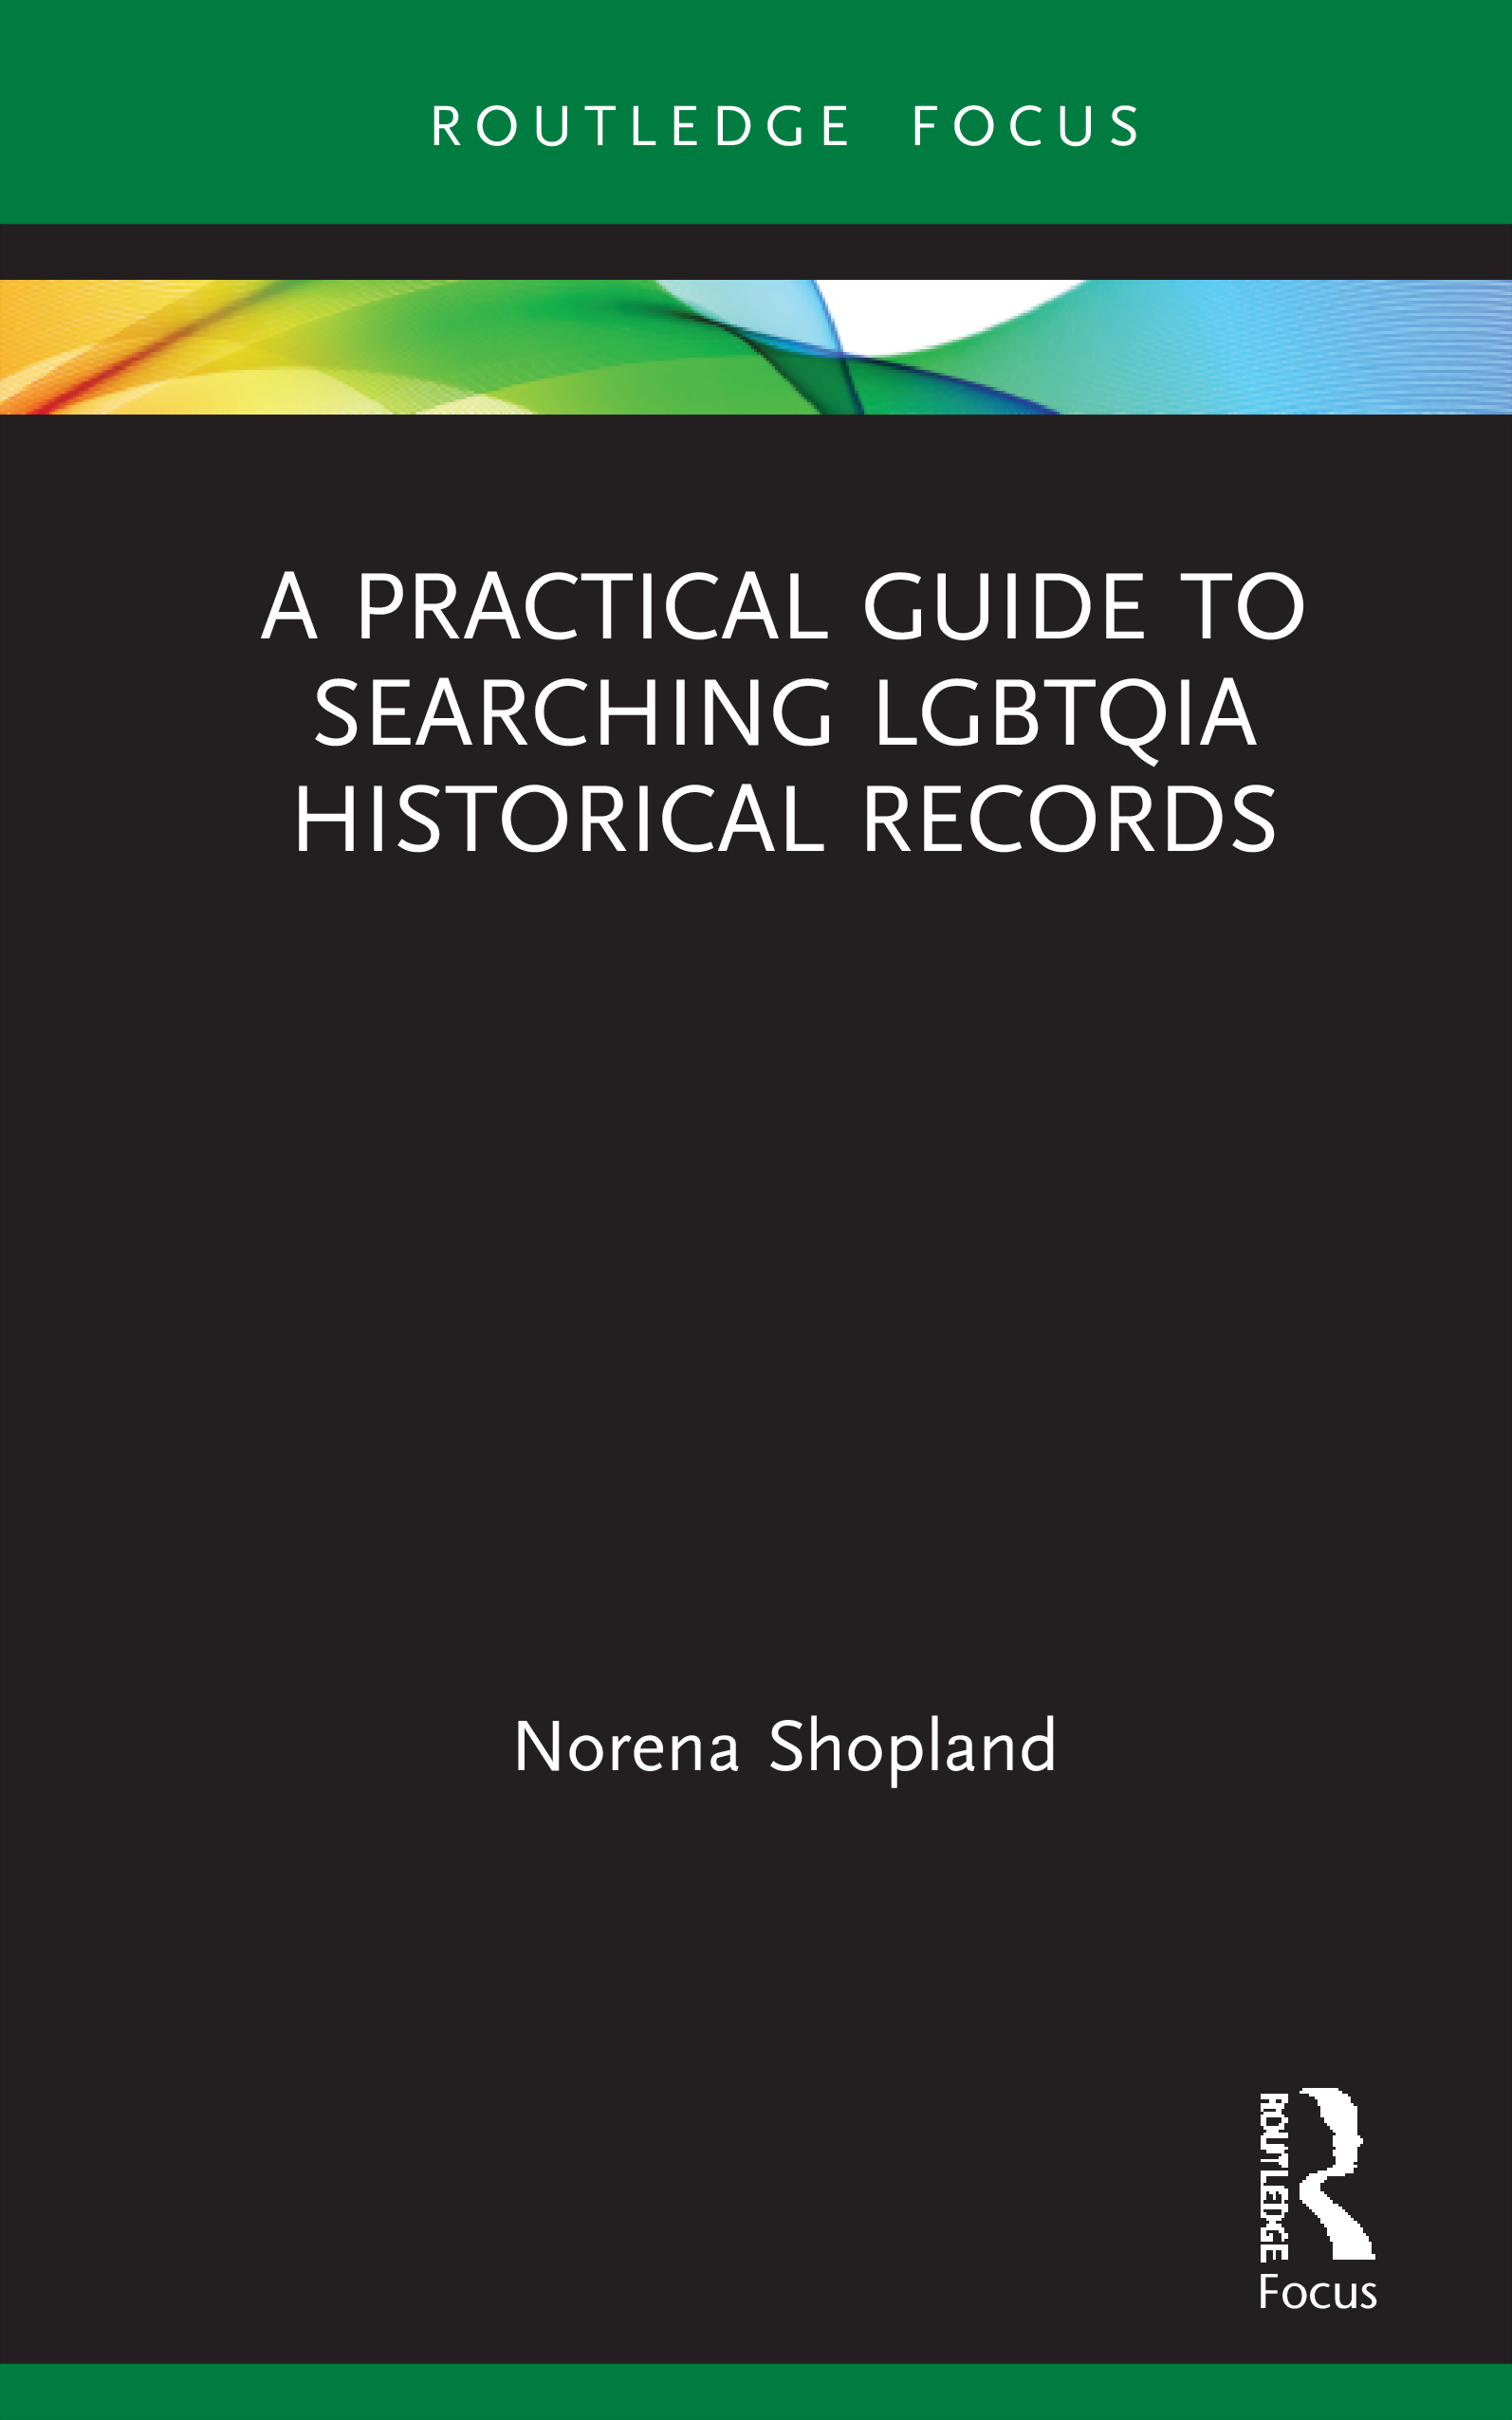 A practical guide to searching LGBTQIA historical records